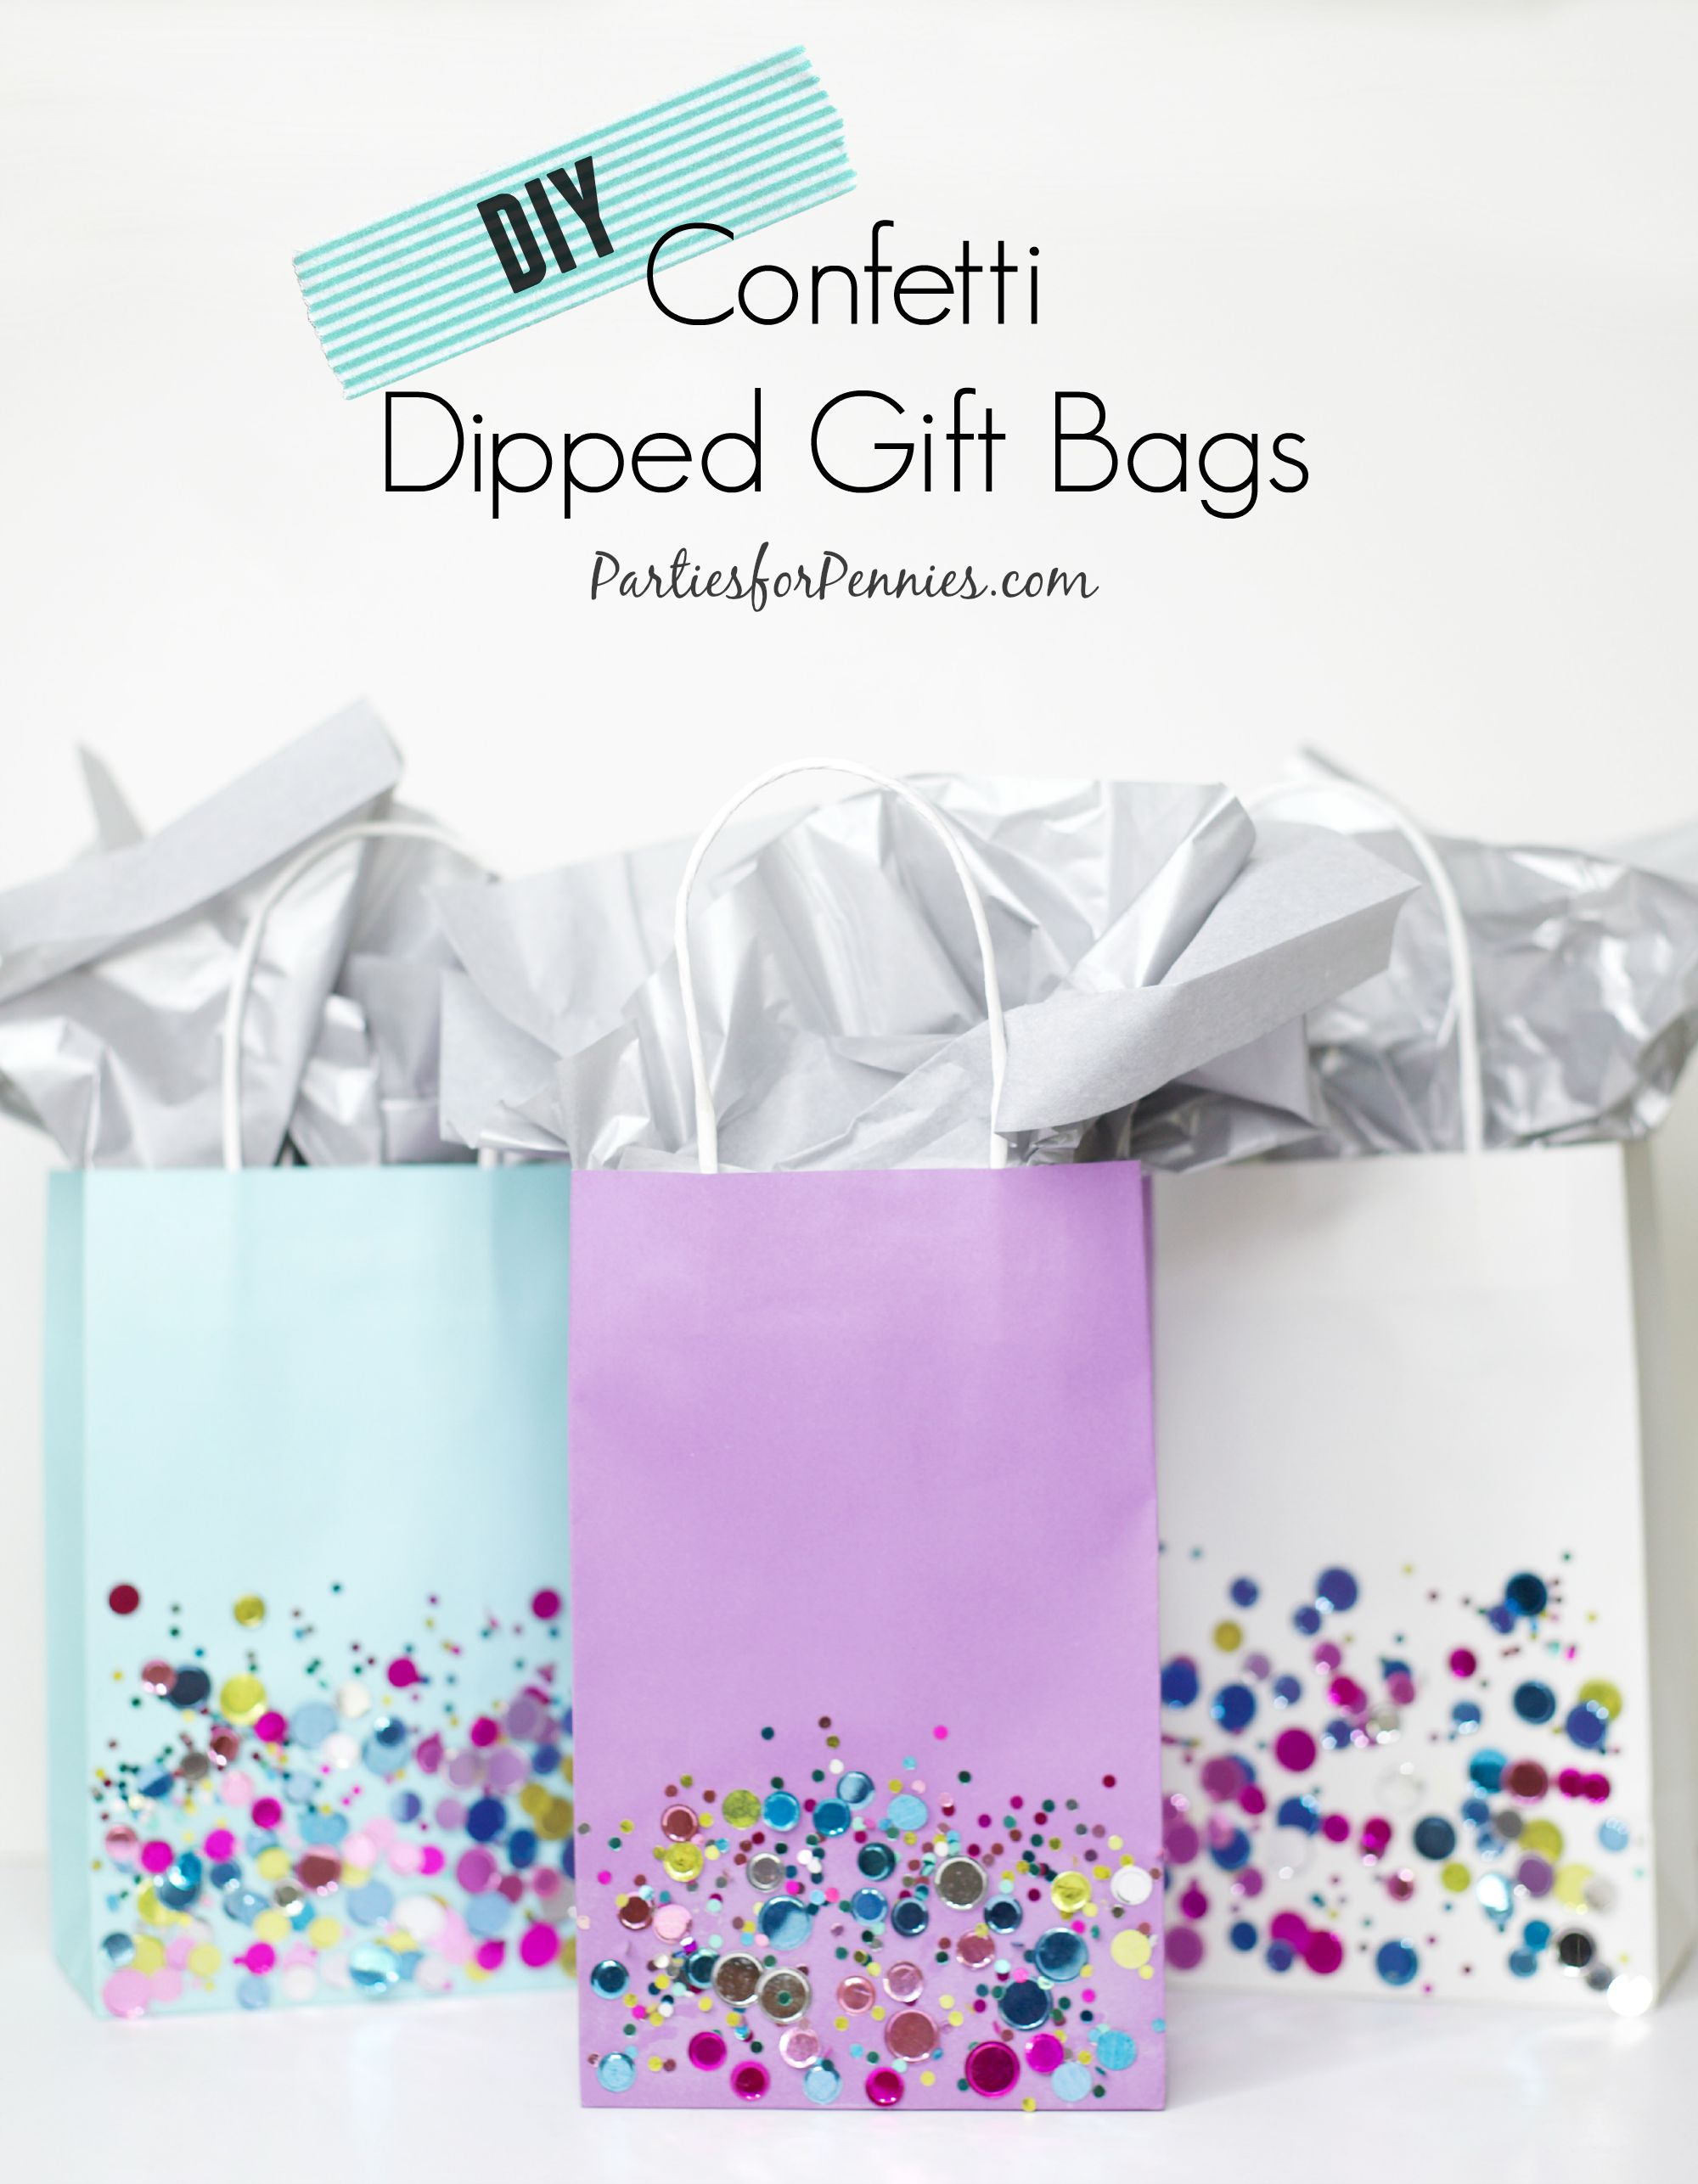 DIY Confetti Dipped Gift Bags | PartiesforPennies.com